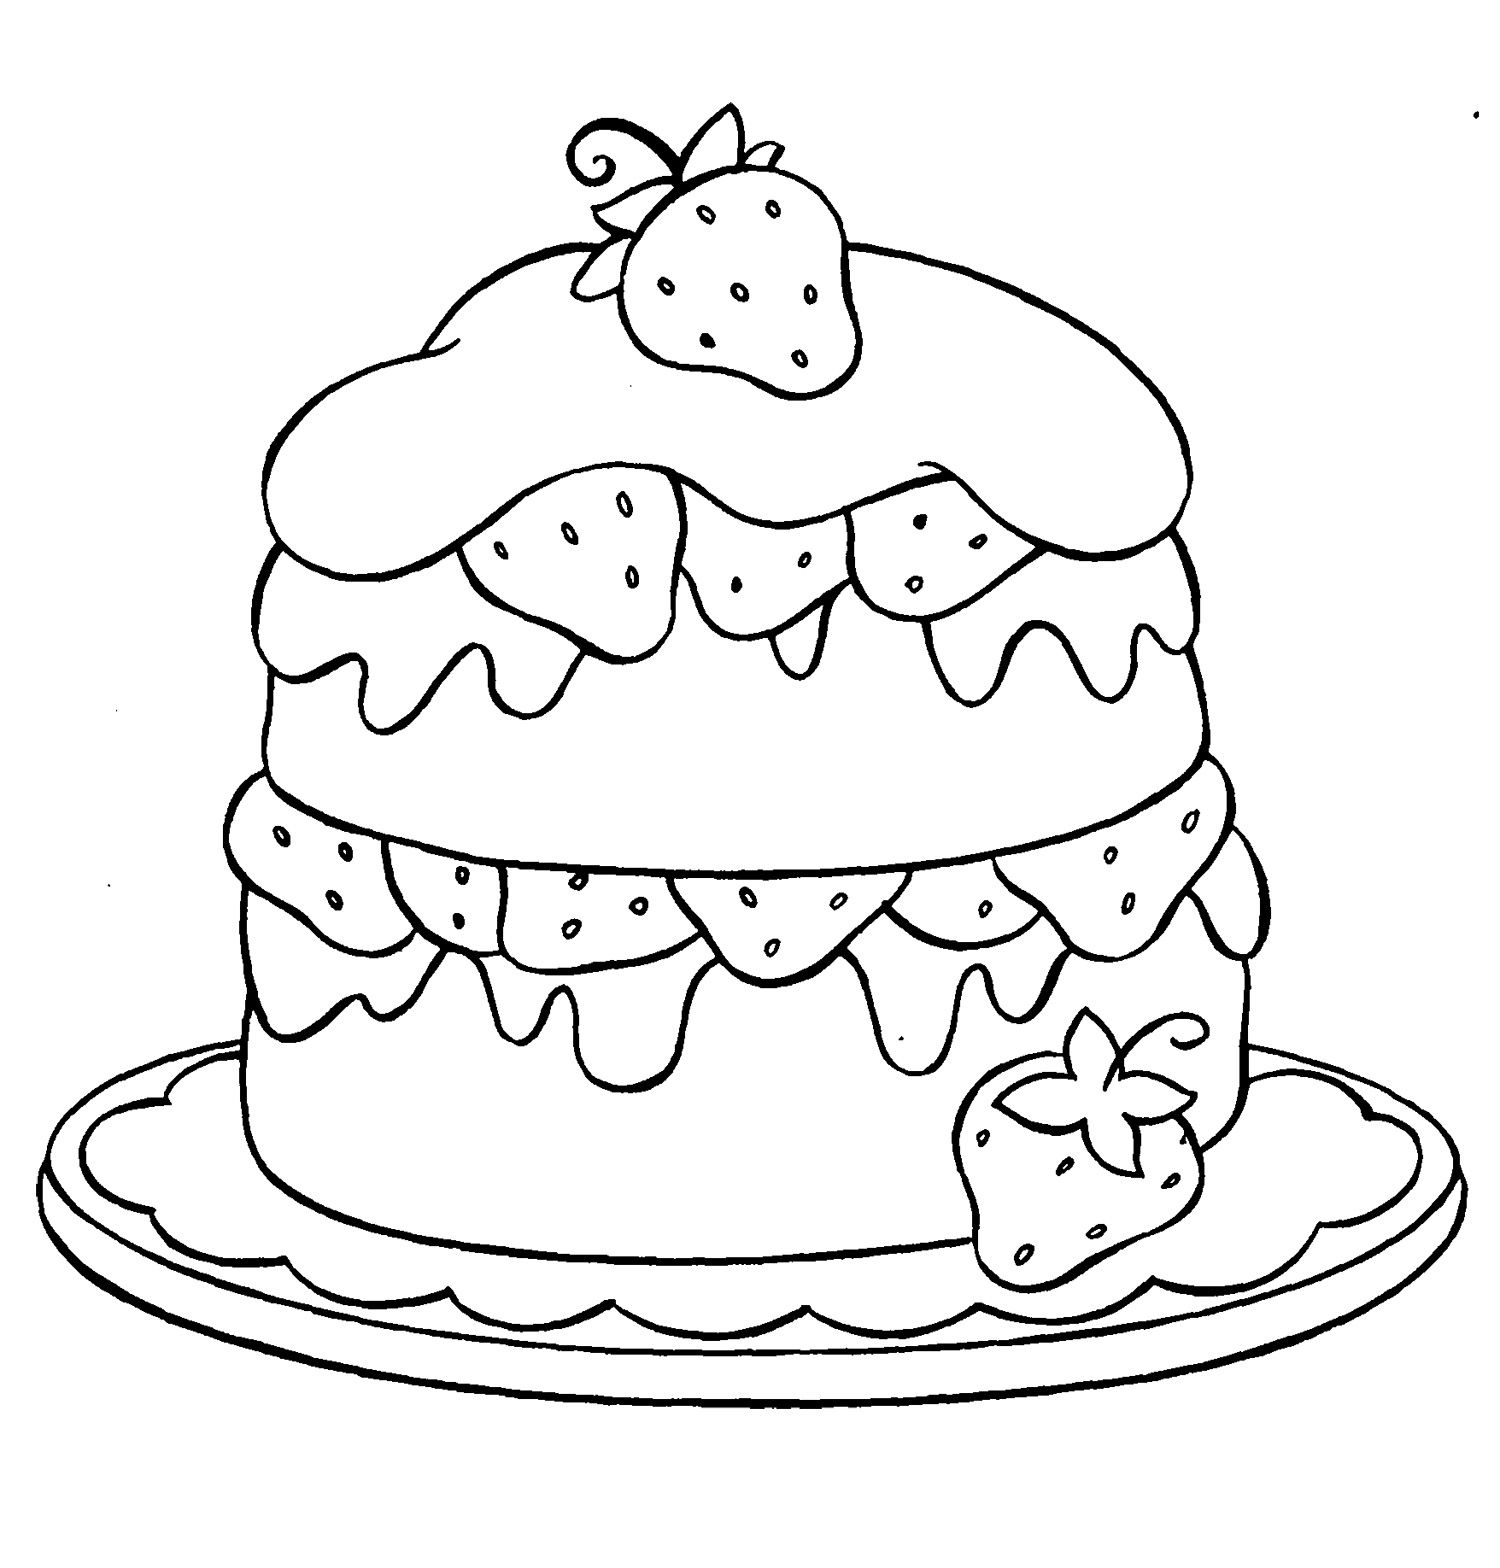 Cupcake Strawberry Coloring Page cupcake sweets